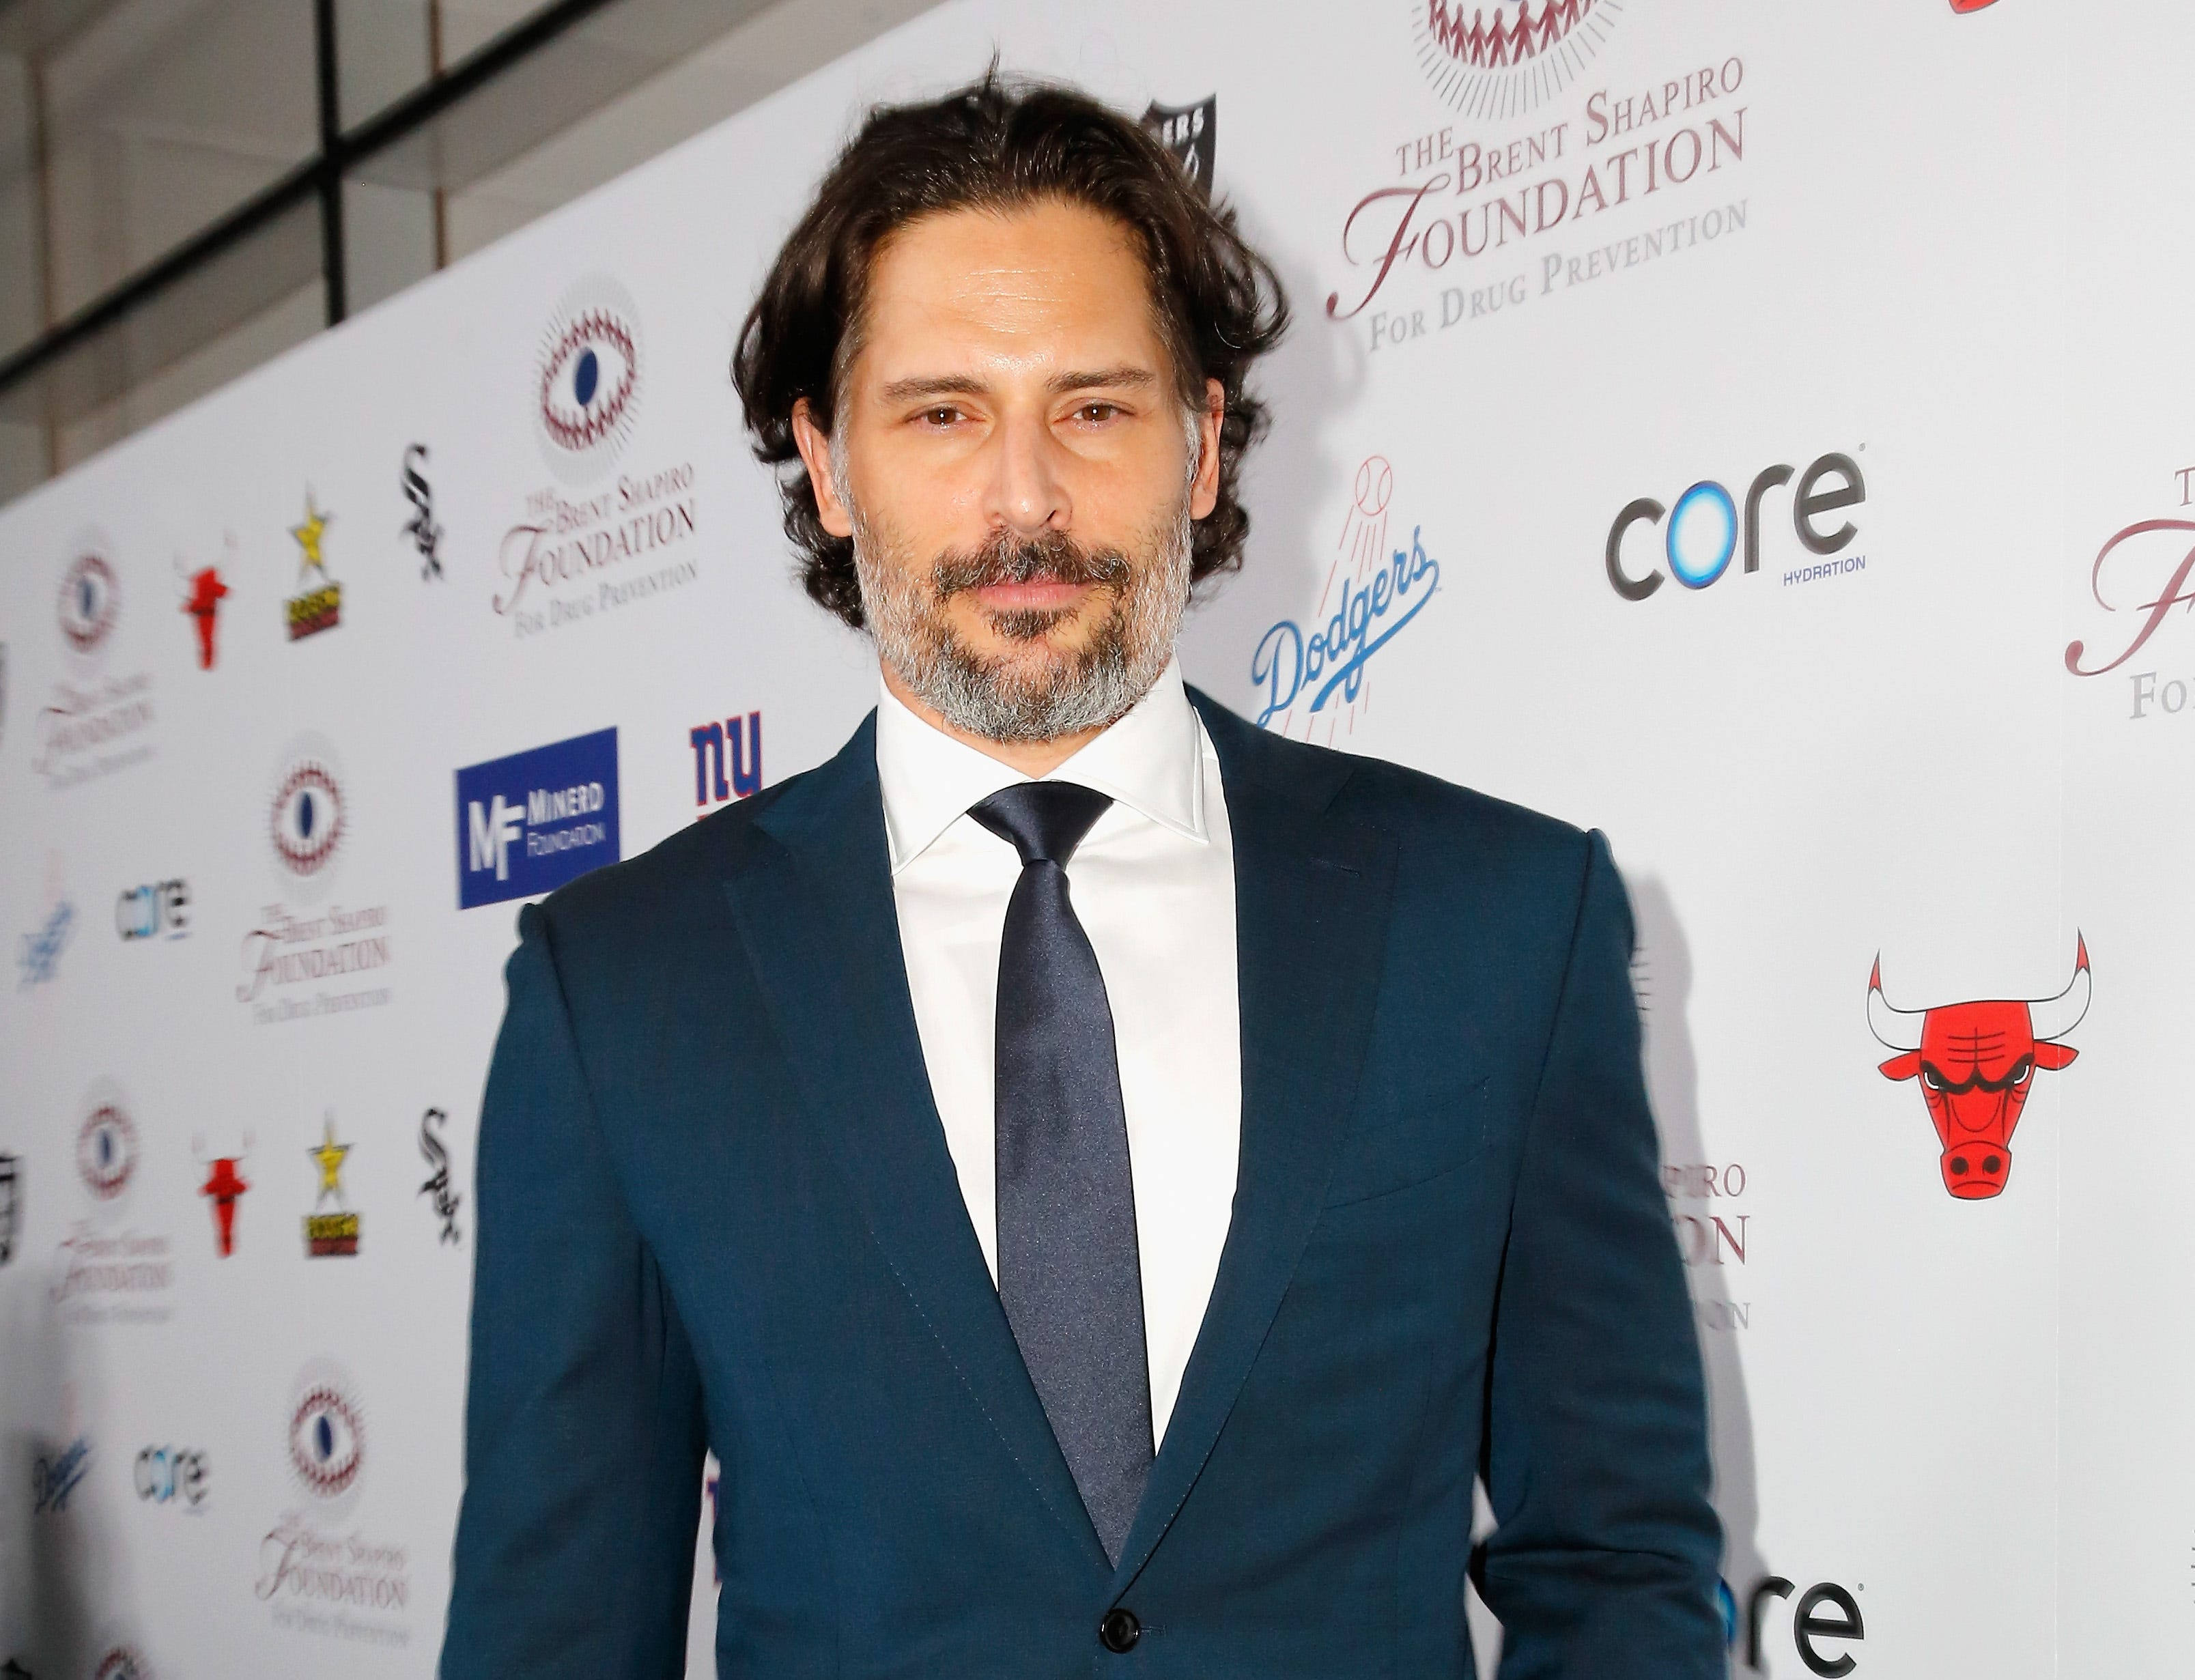 BEVERLY HILLS, CA - SEPTEMBER 07:  Joe Manganiello arrives at The Brent Shapiro Foundation Summer Spectacular at The Beverly Hilton Hotel on September 7, 2018 in Beverly Hills, California.  (Photo by Rachel Murray/Getty Images for The Brent Shapiro Foundation) ORG XMIT: 775223333 ORIG FILE ID: 1028935376